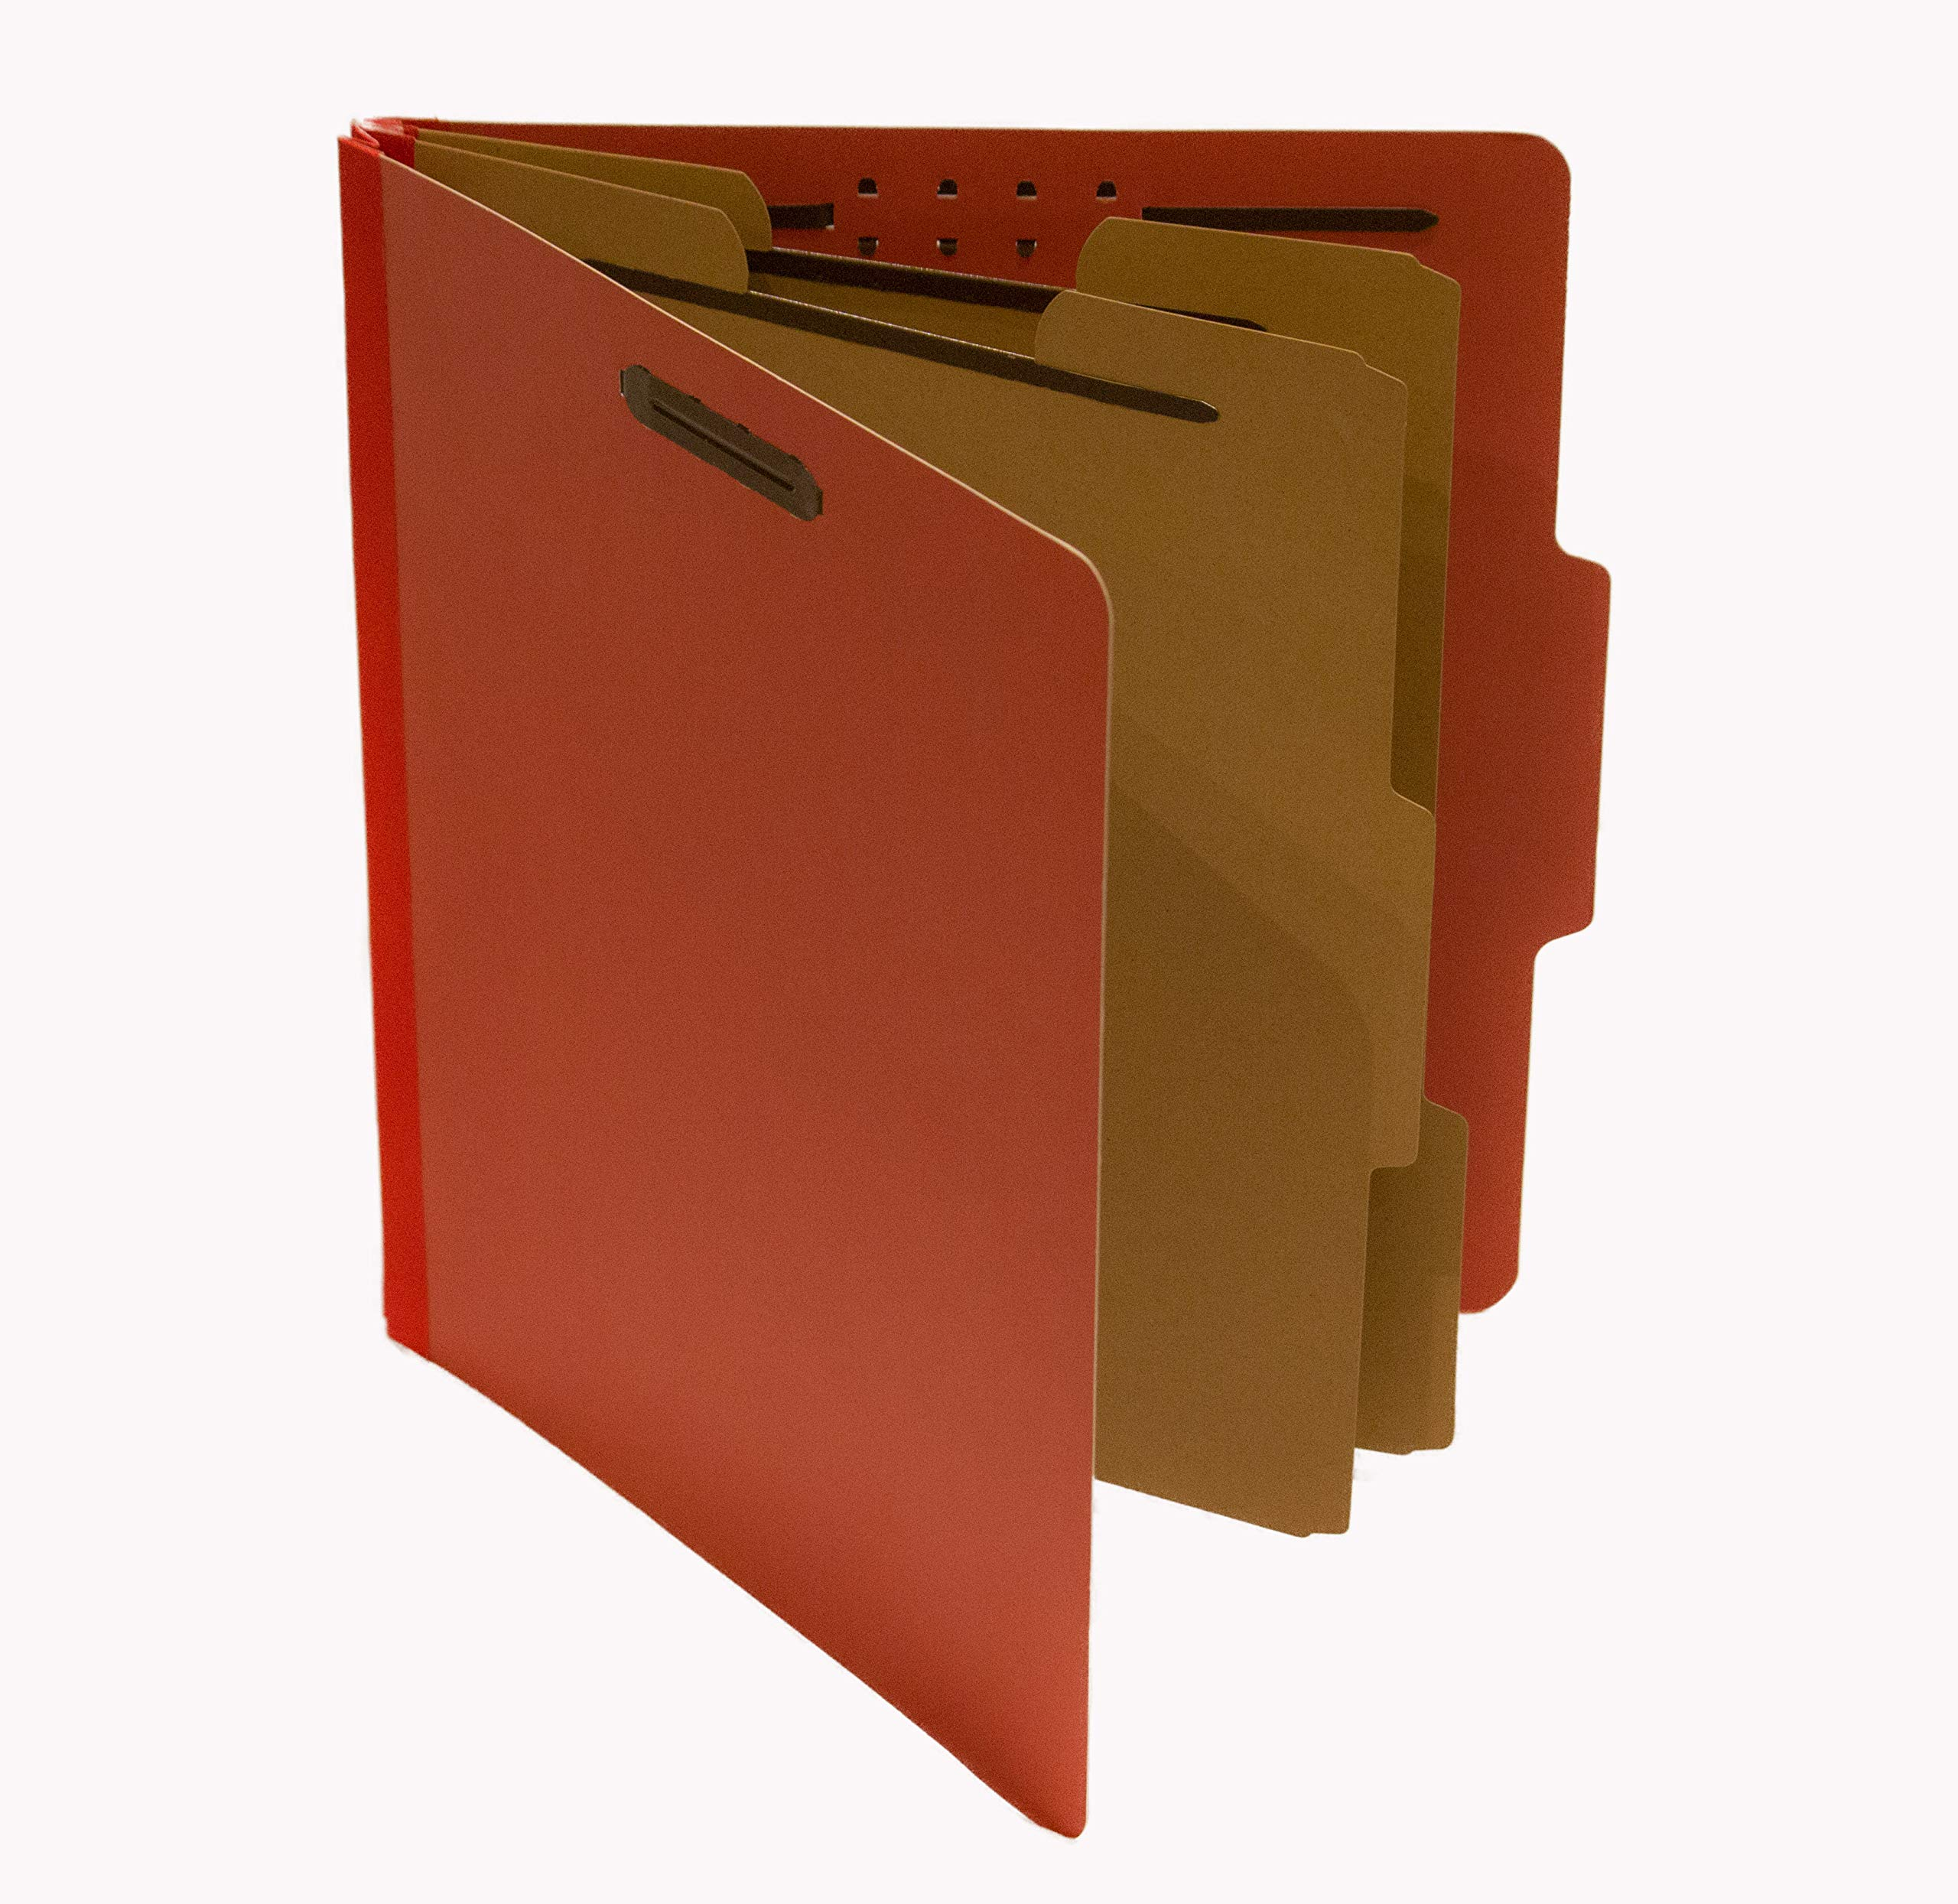 10 Letter Sized Classification Folders, Document Organizer Accordian Style with 2 File Dividers Used for Portable or Permanent File Storage. by PAS